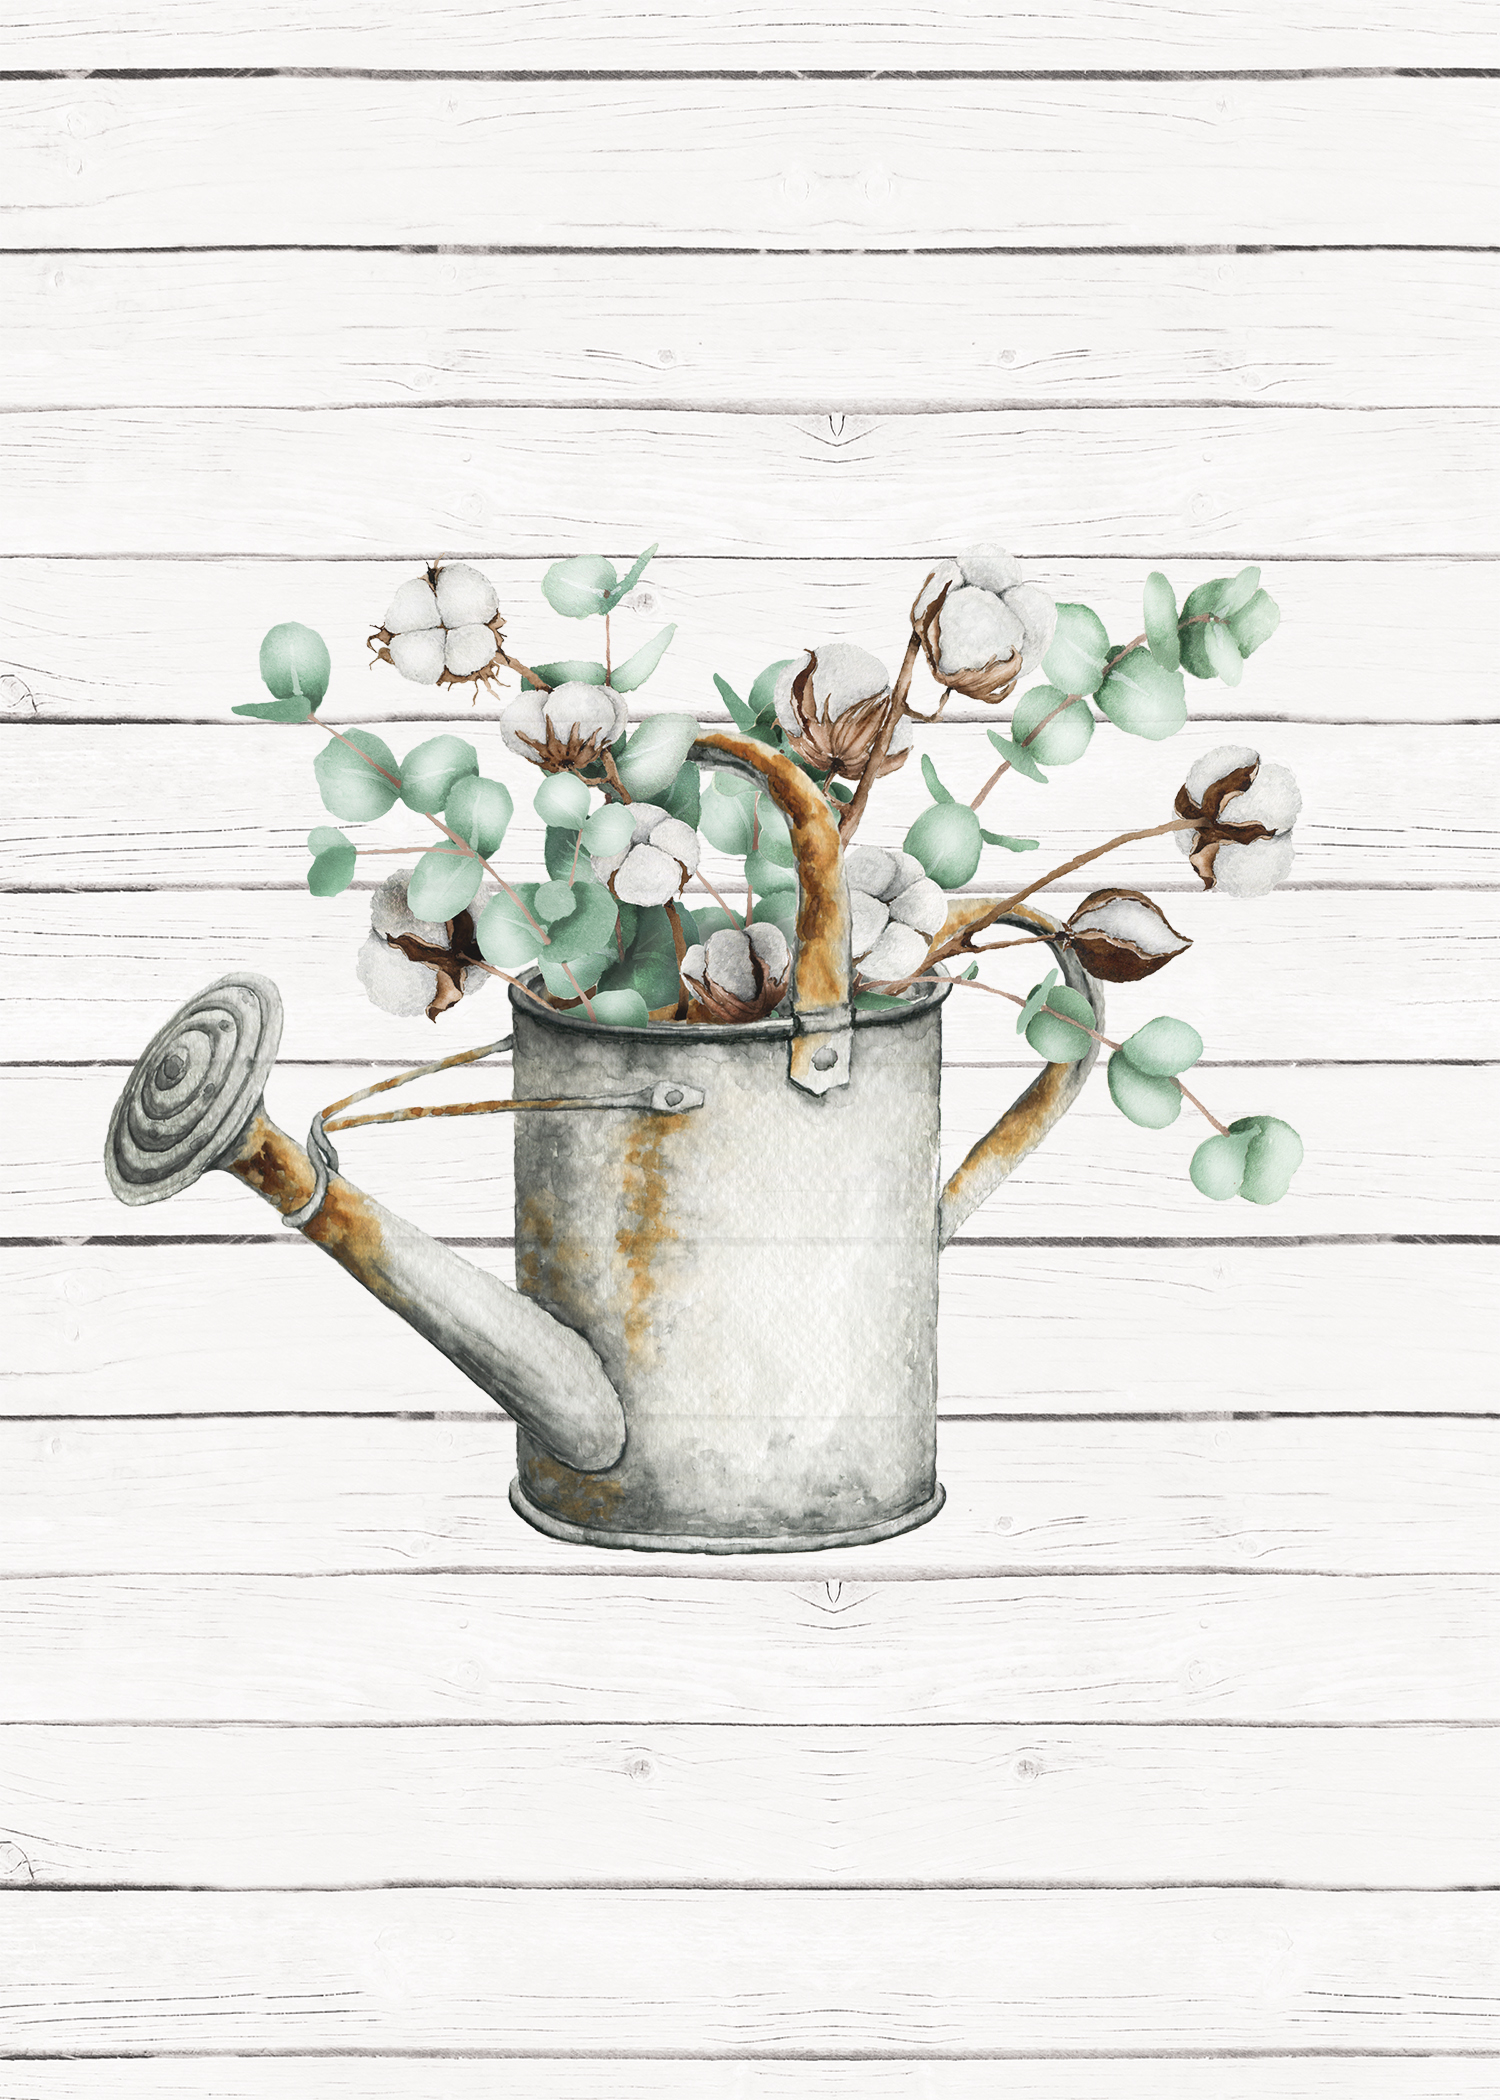 Free Printable Rustic Farmhouse Wall Art Collection